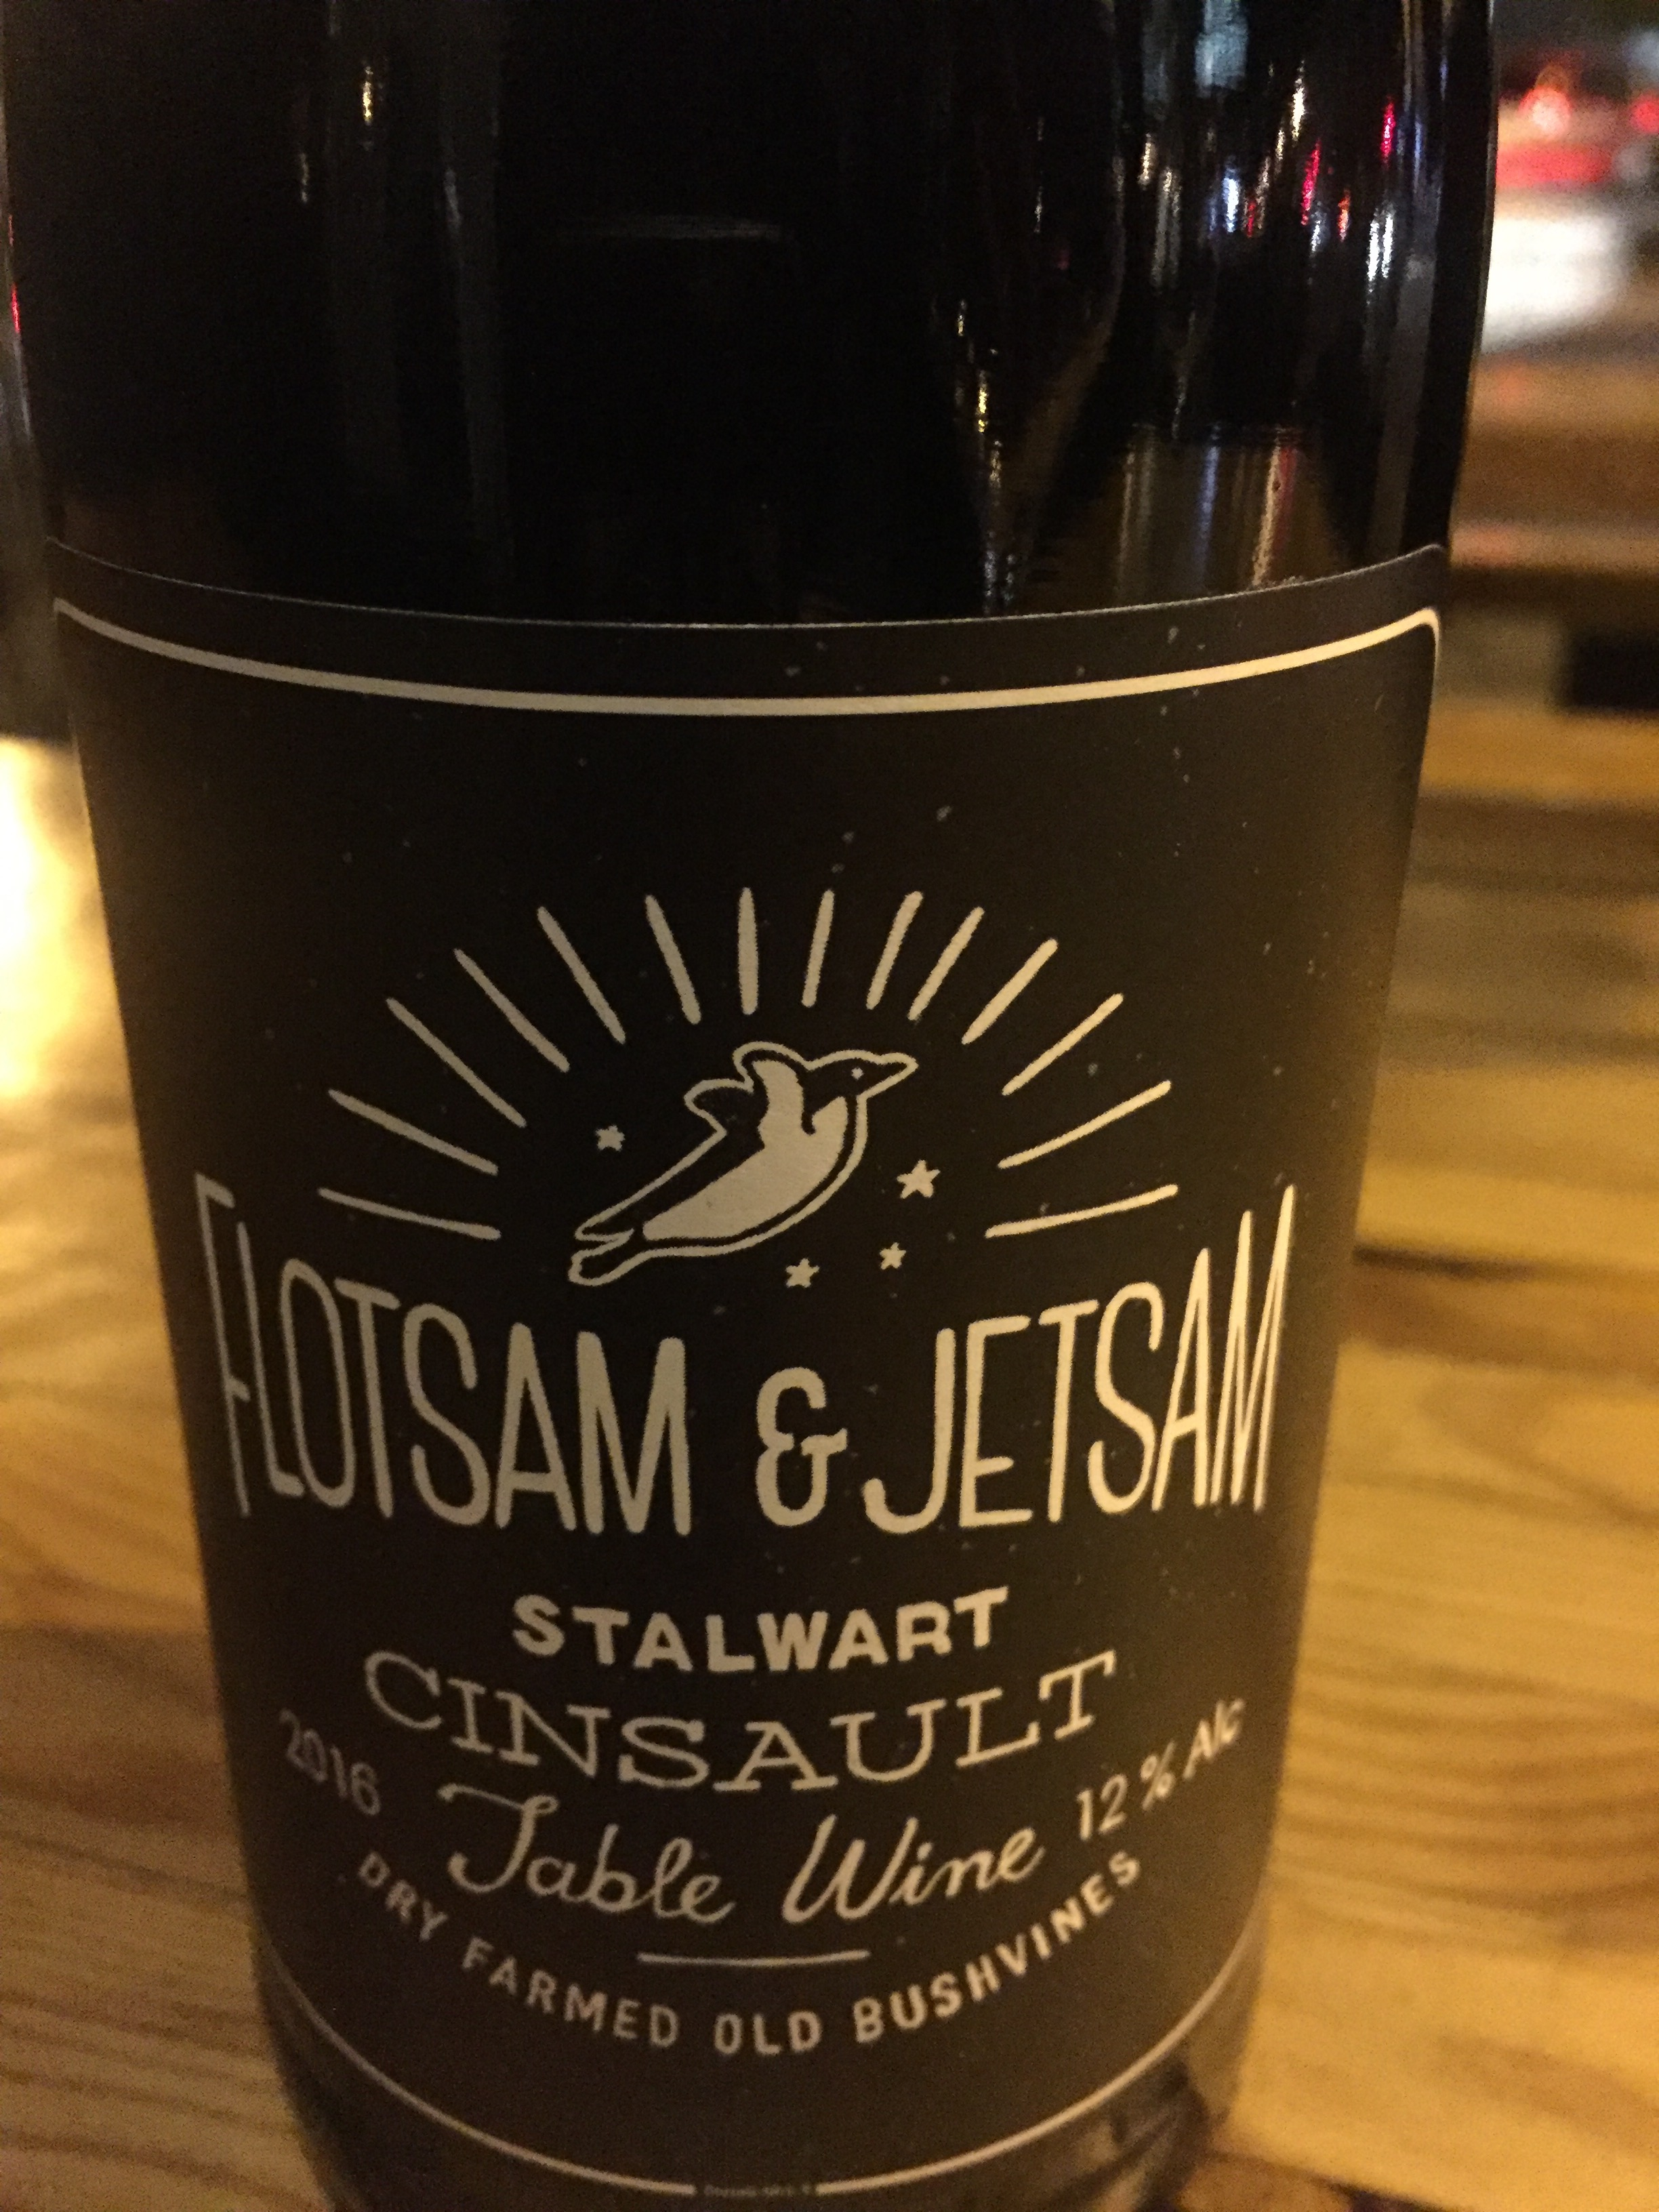 At just 12% ABV, wines such as these challenge stereotypes of South African wine.  (Flotsam & Jetsam is a label co-owned by Chris Alheit, one of the highest regarded of South Africa's new winemakers.)